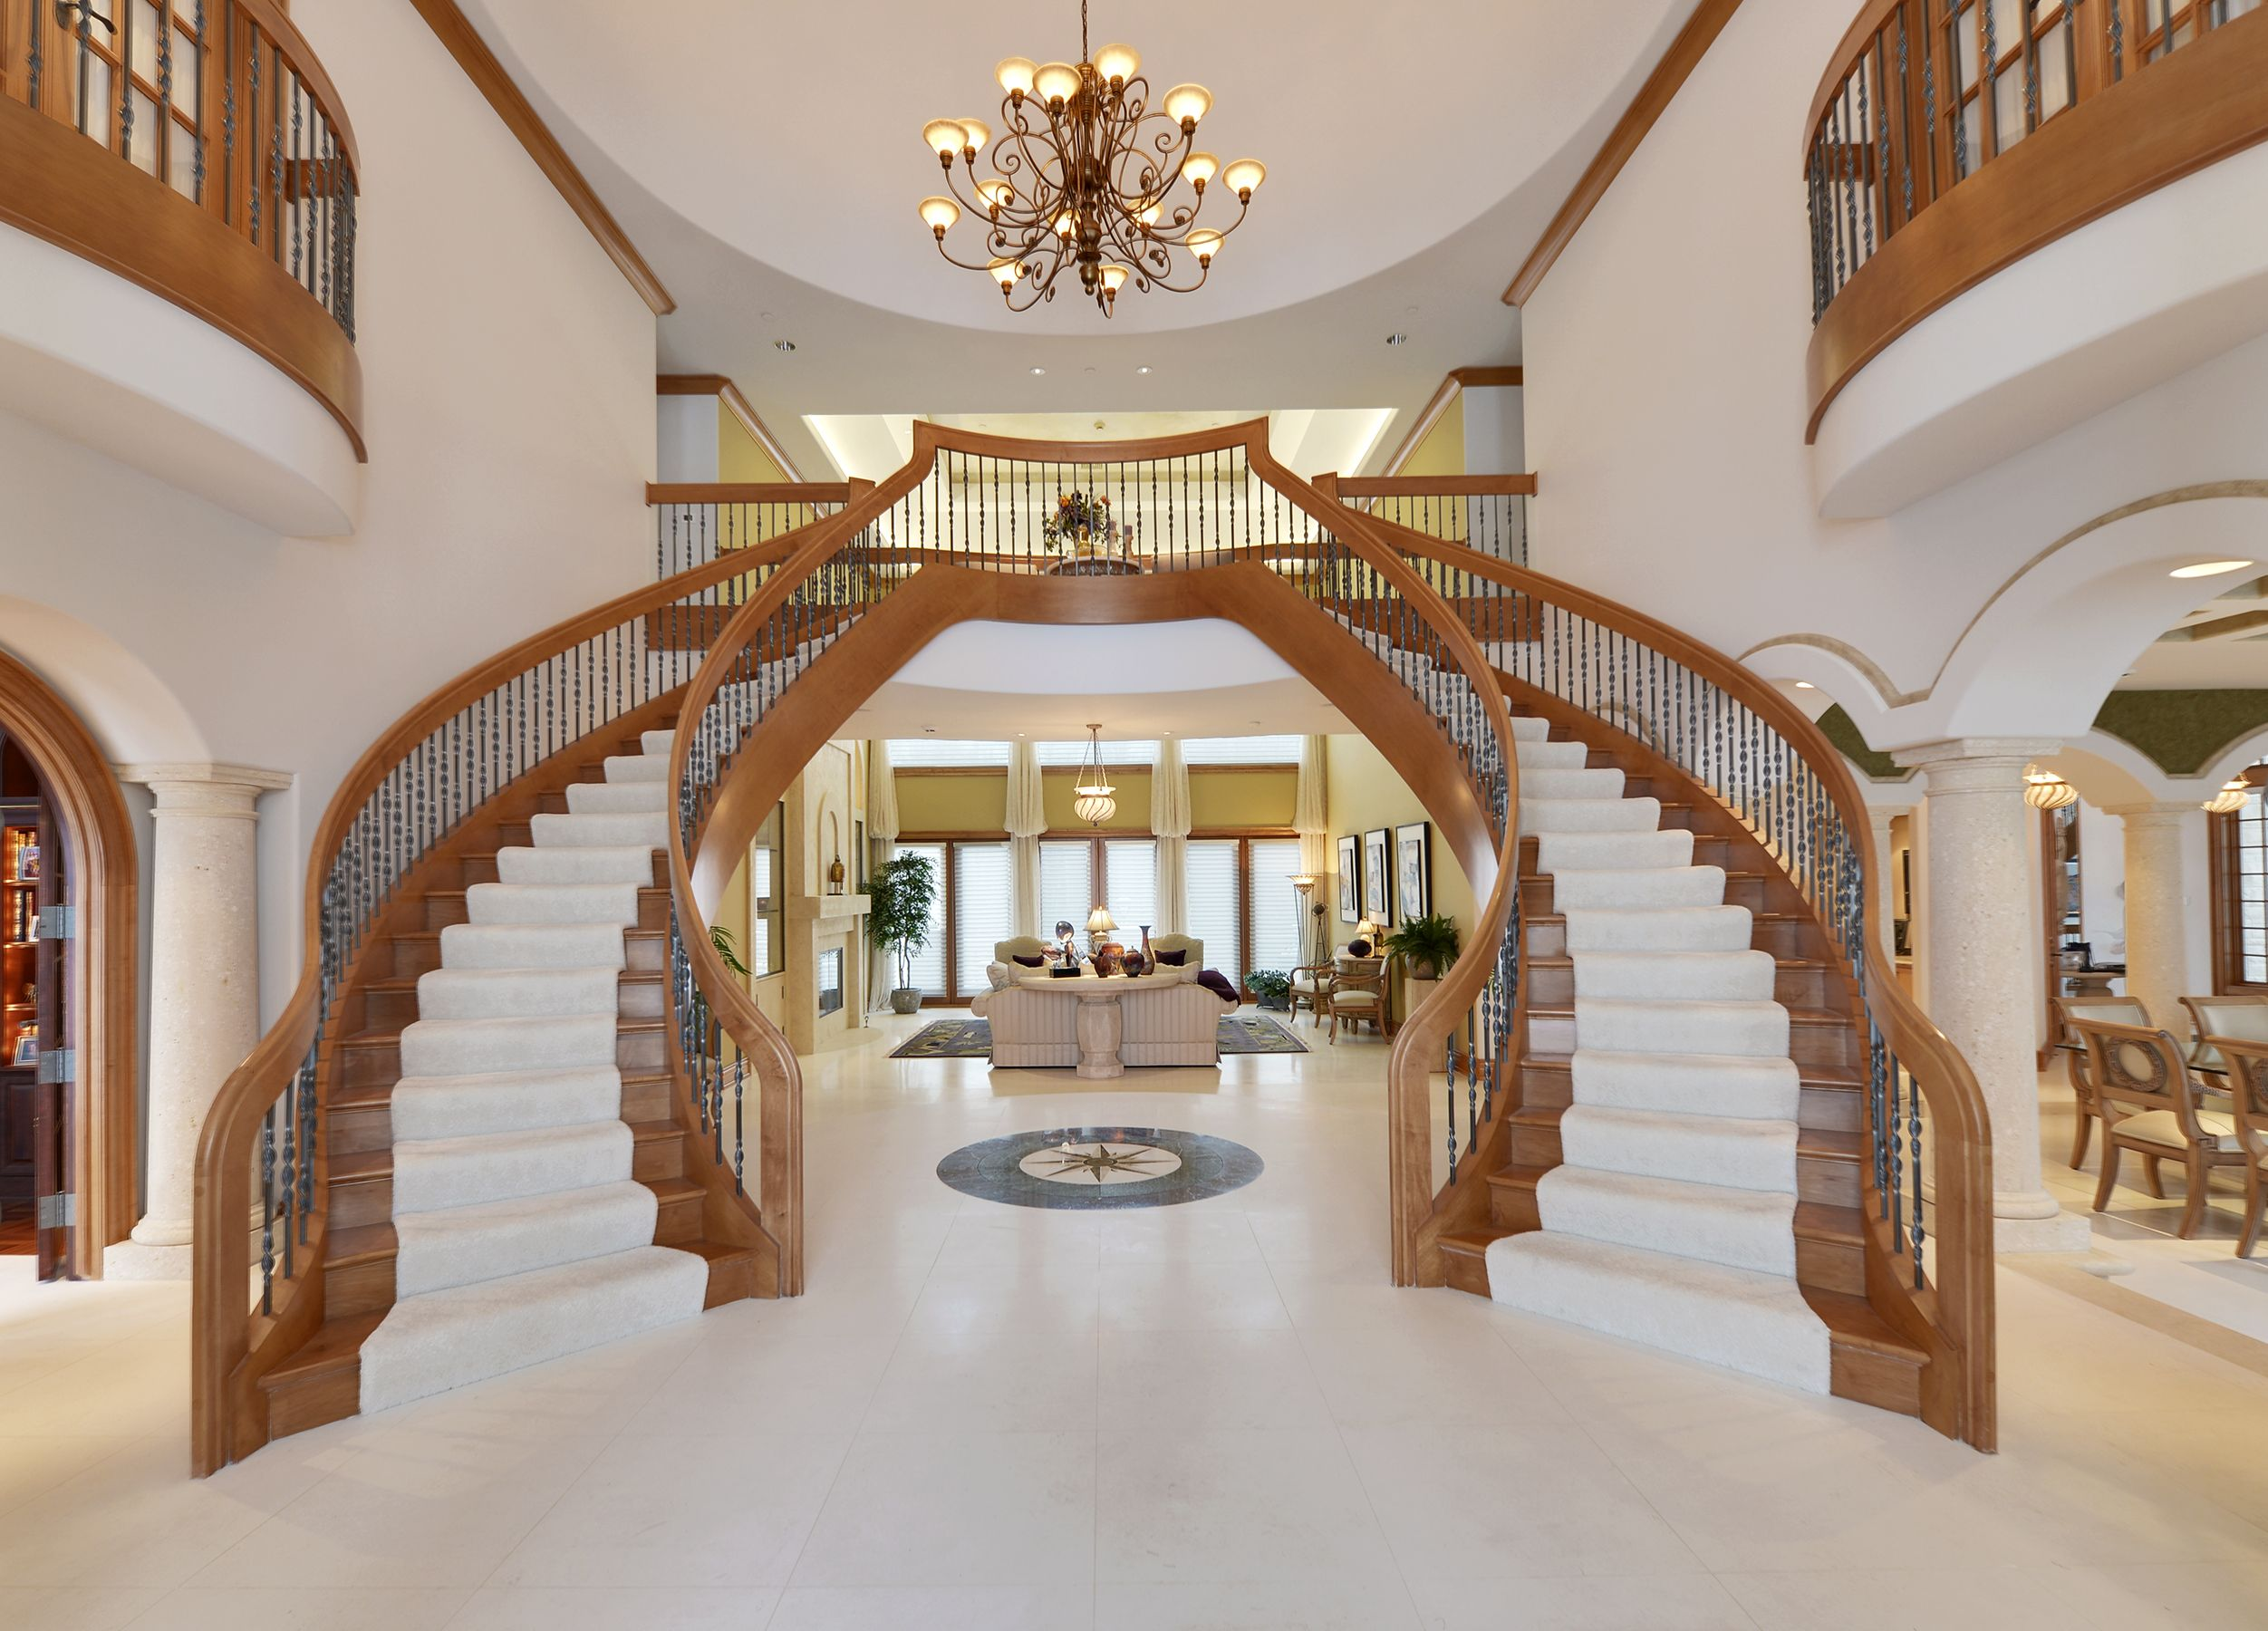 Entrance And Foyer : Dual staircase in grand foyer luxury homes pinterest